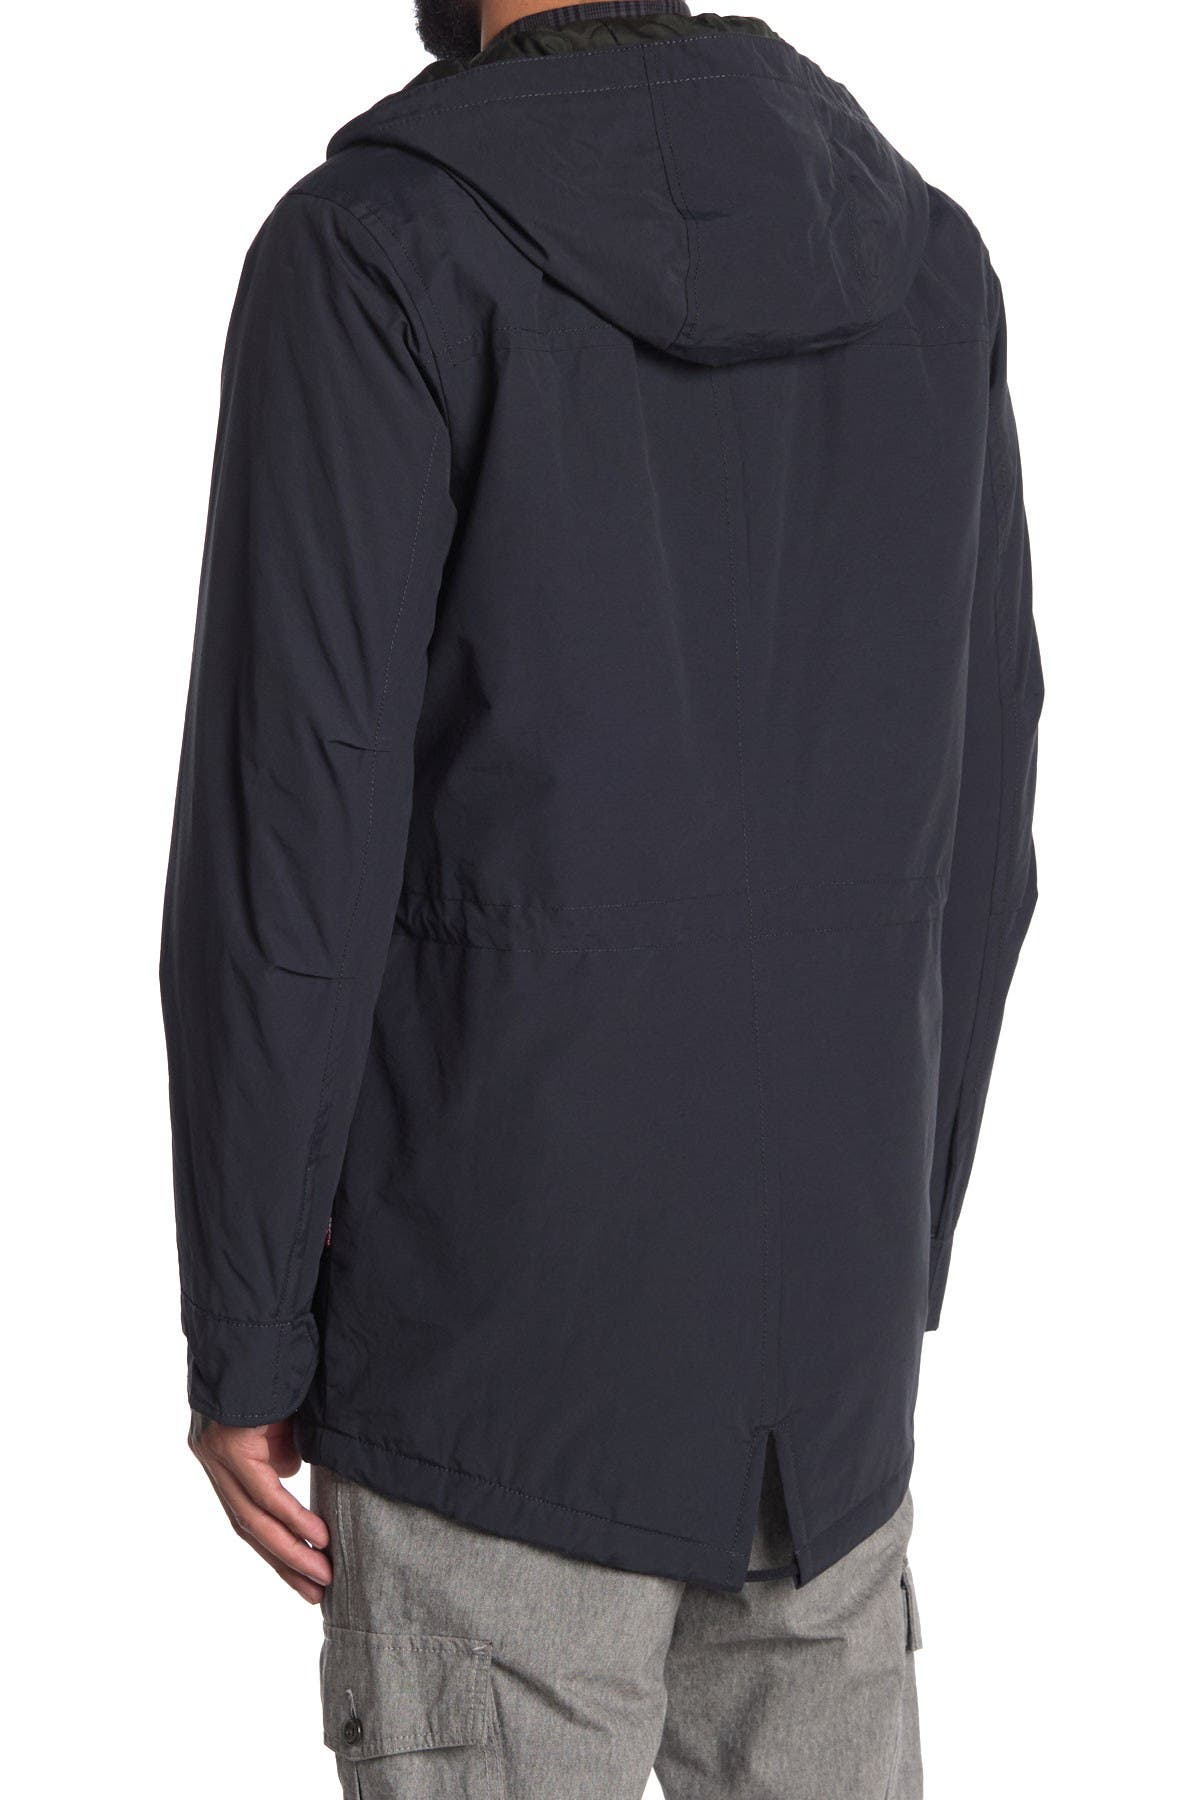 Image of Levi's Fishtail Parka Jacket w/ Quilted Lining